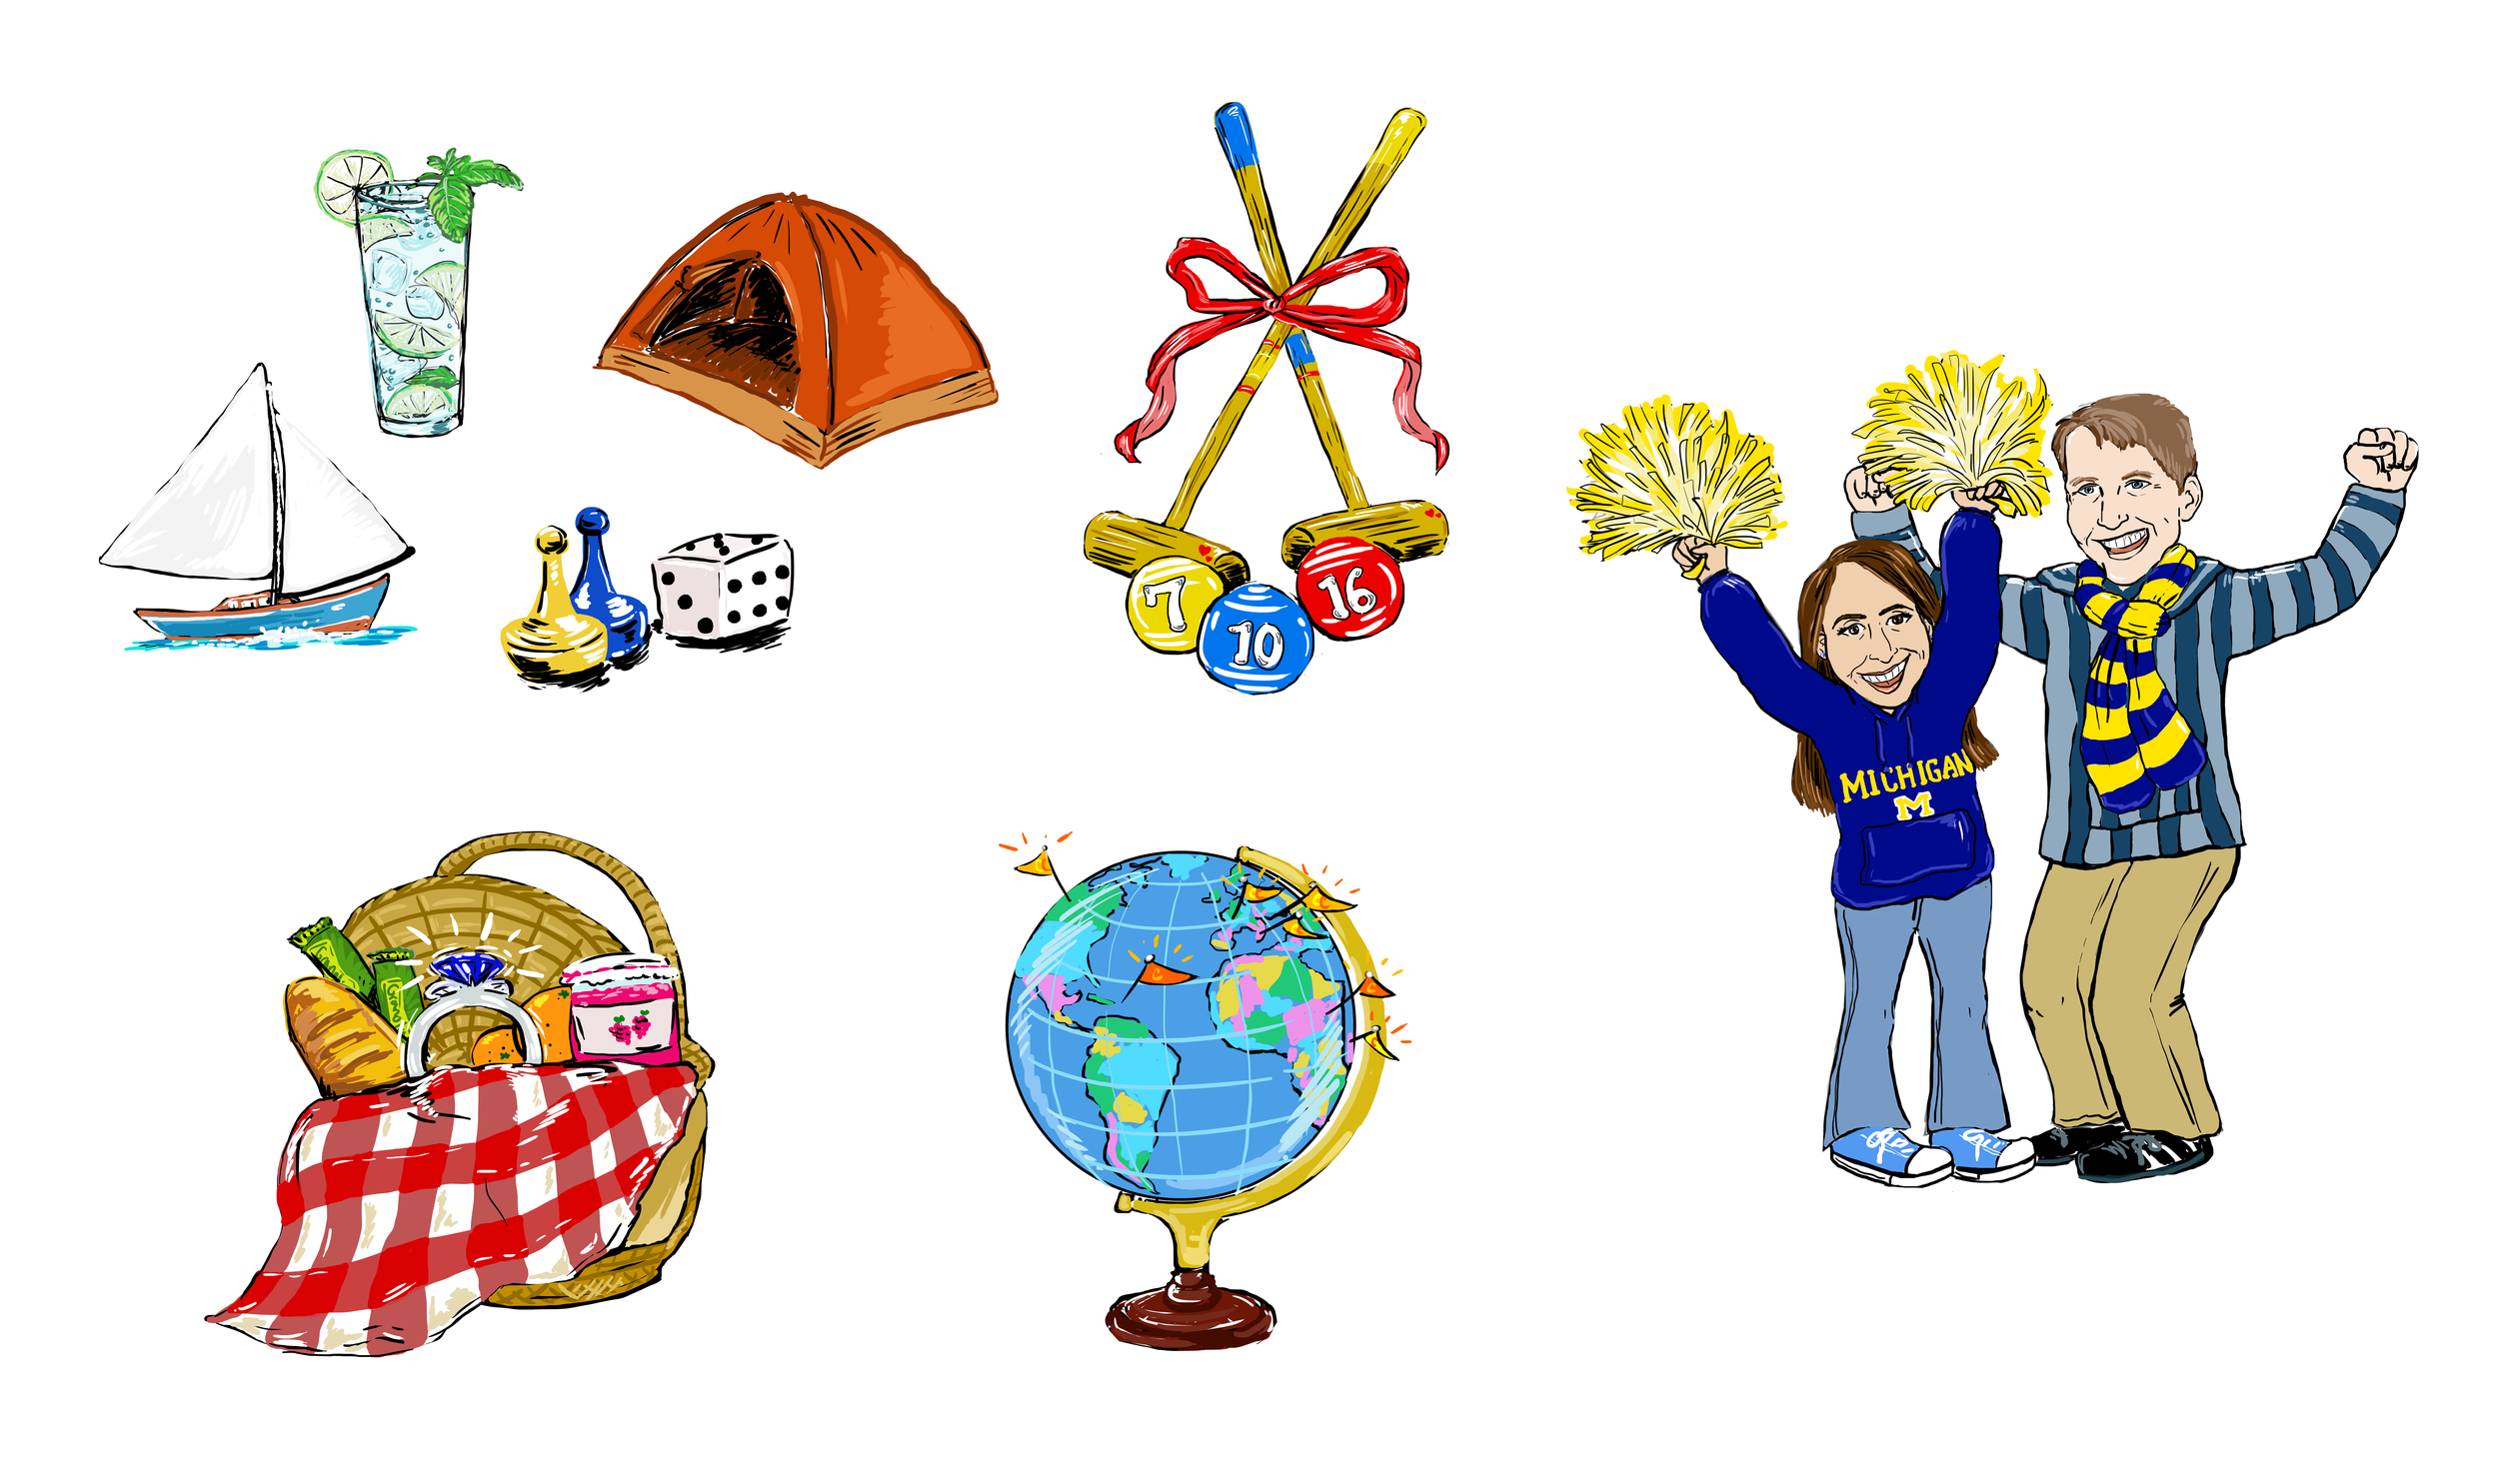 Various icons from the site